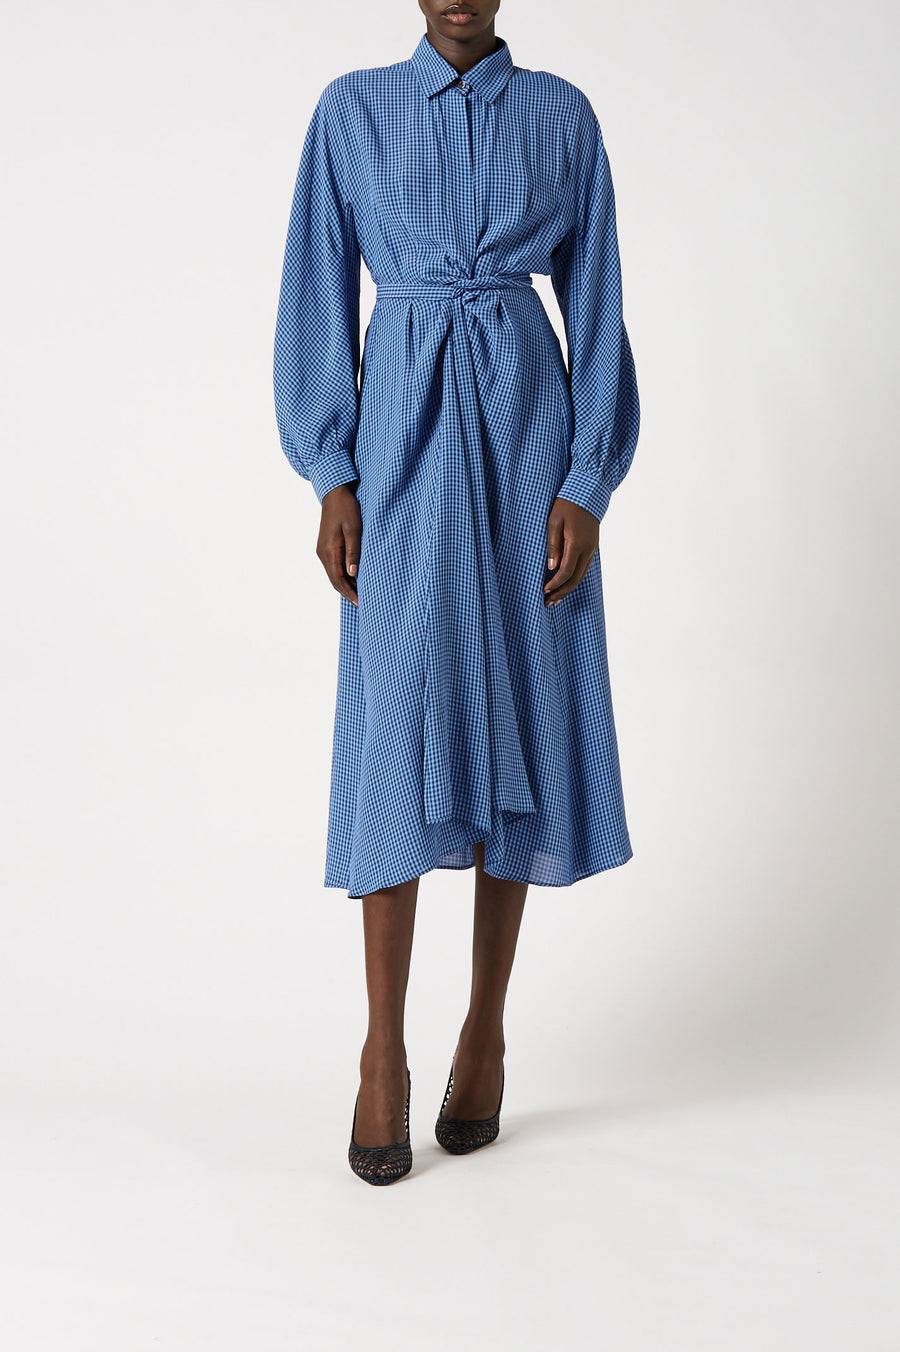 Designed with a flattering wrap style and contemporary blouson sleeves, the mid length dress features a front button closure and narrow collar.